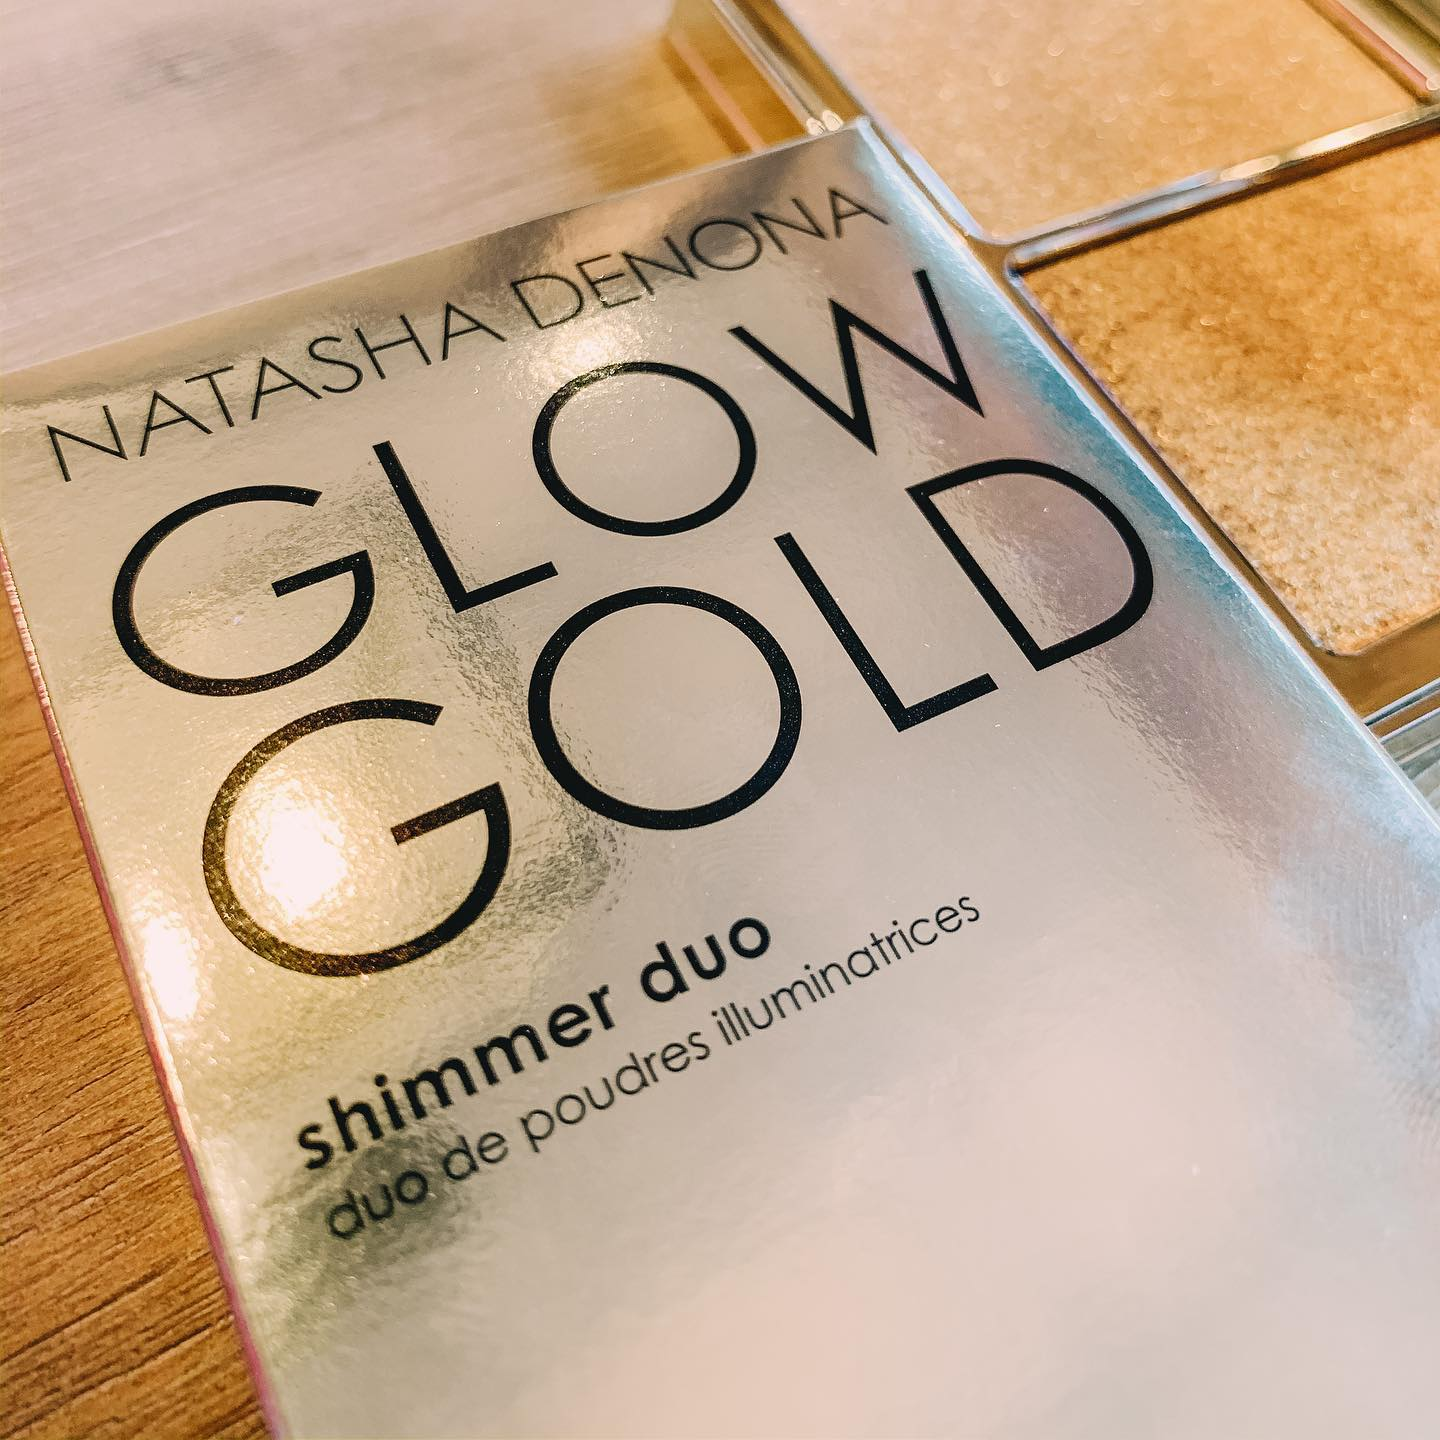 If you are travelling and come across @natashadenona products, I strongly suggest you try the shimmer duo - it's my absolute favorite (next to Becca) and I think you will appreciate everything about this product if you are a make up junkie. It comes beautifully packaged - (the best I have seen and felt for a highlighter and illuminator), it's long lasting and looks very attractive on Indian skin tones. You will just have to remember to go easy on it  you might want to use quite a lot because it's so damn pretty!